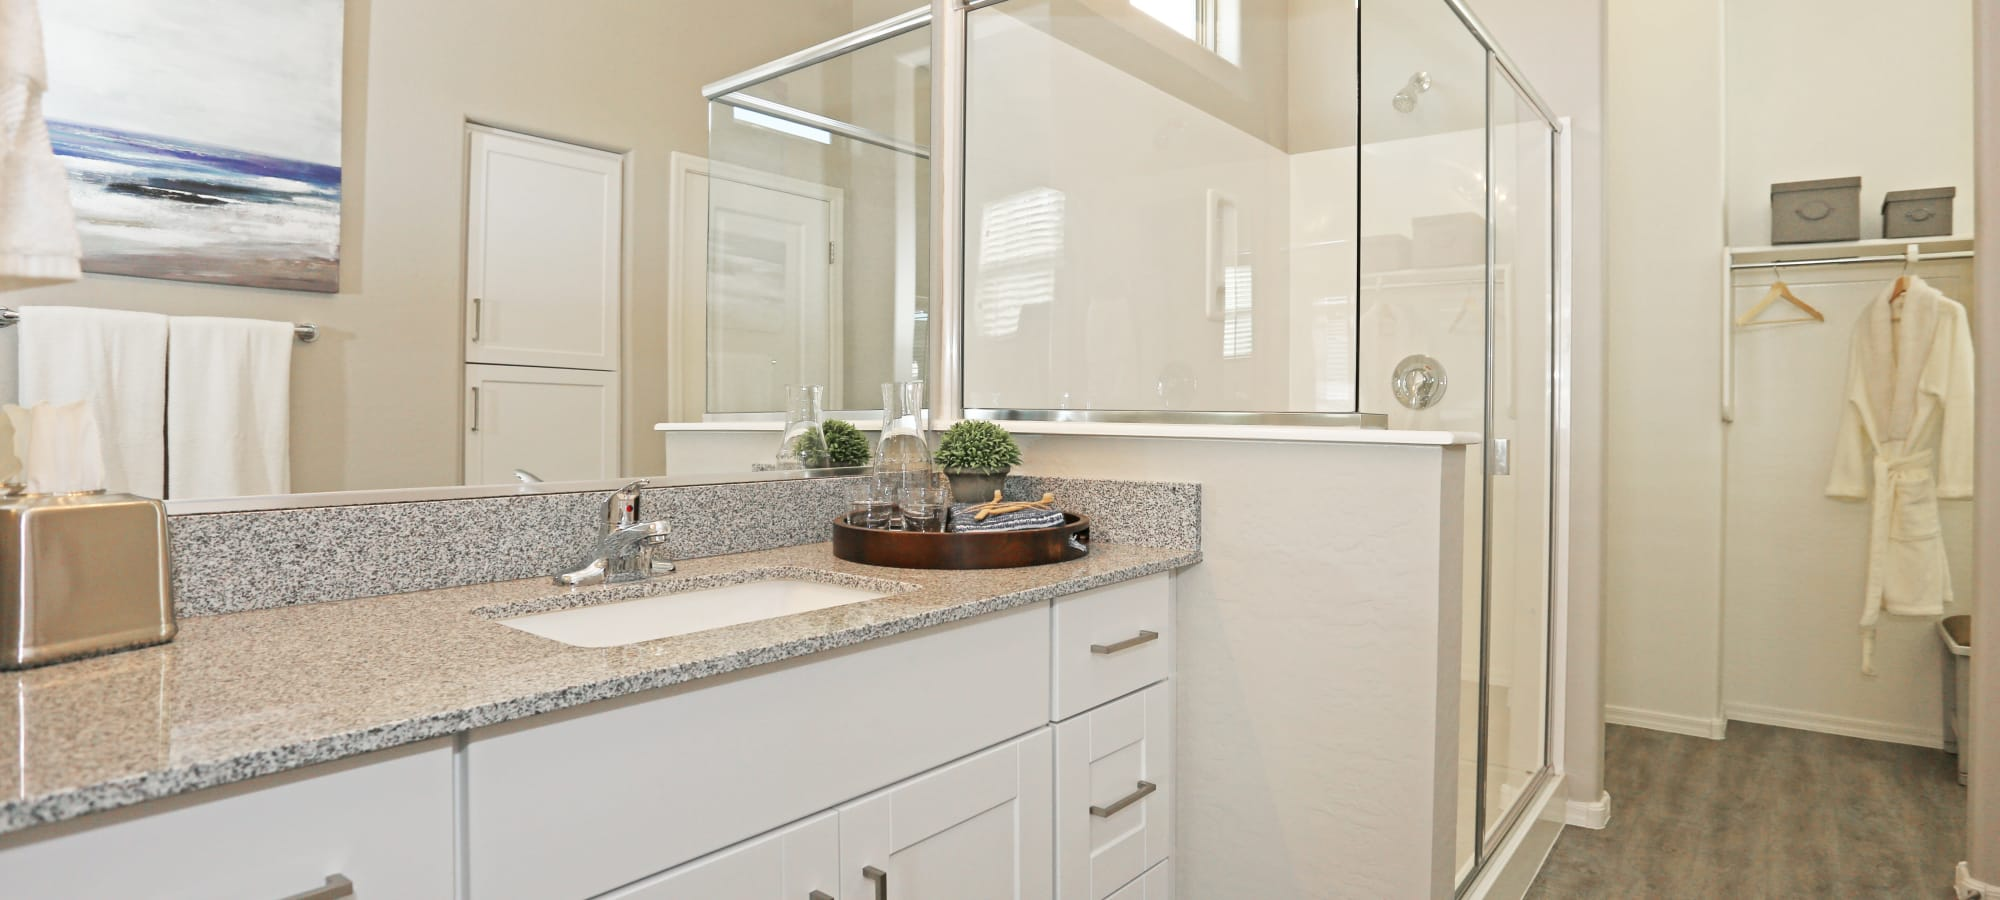 Granite countertop in bathroom of model home at Christopher Todd Communities on Mountain View in Surprise, Arizona